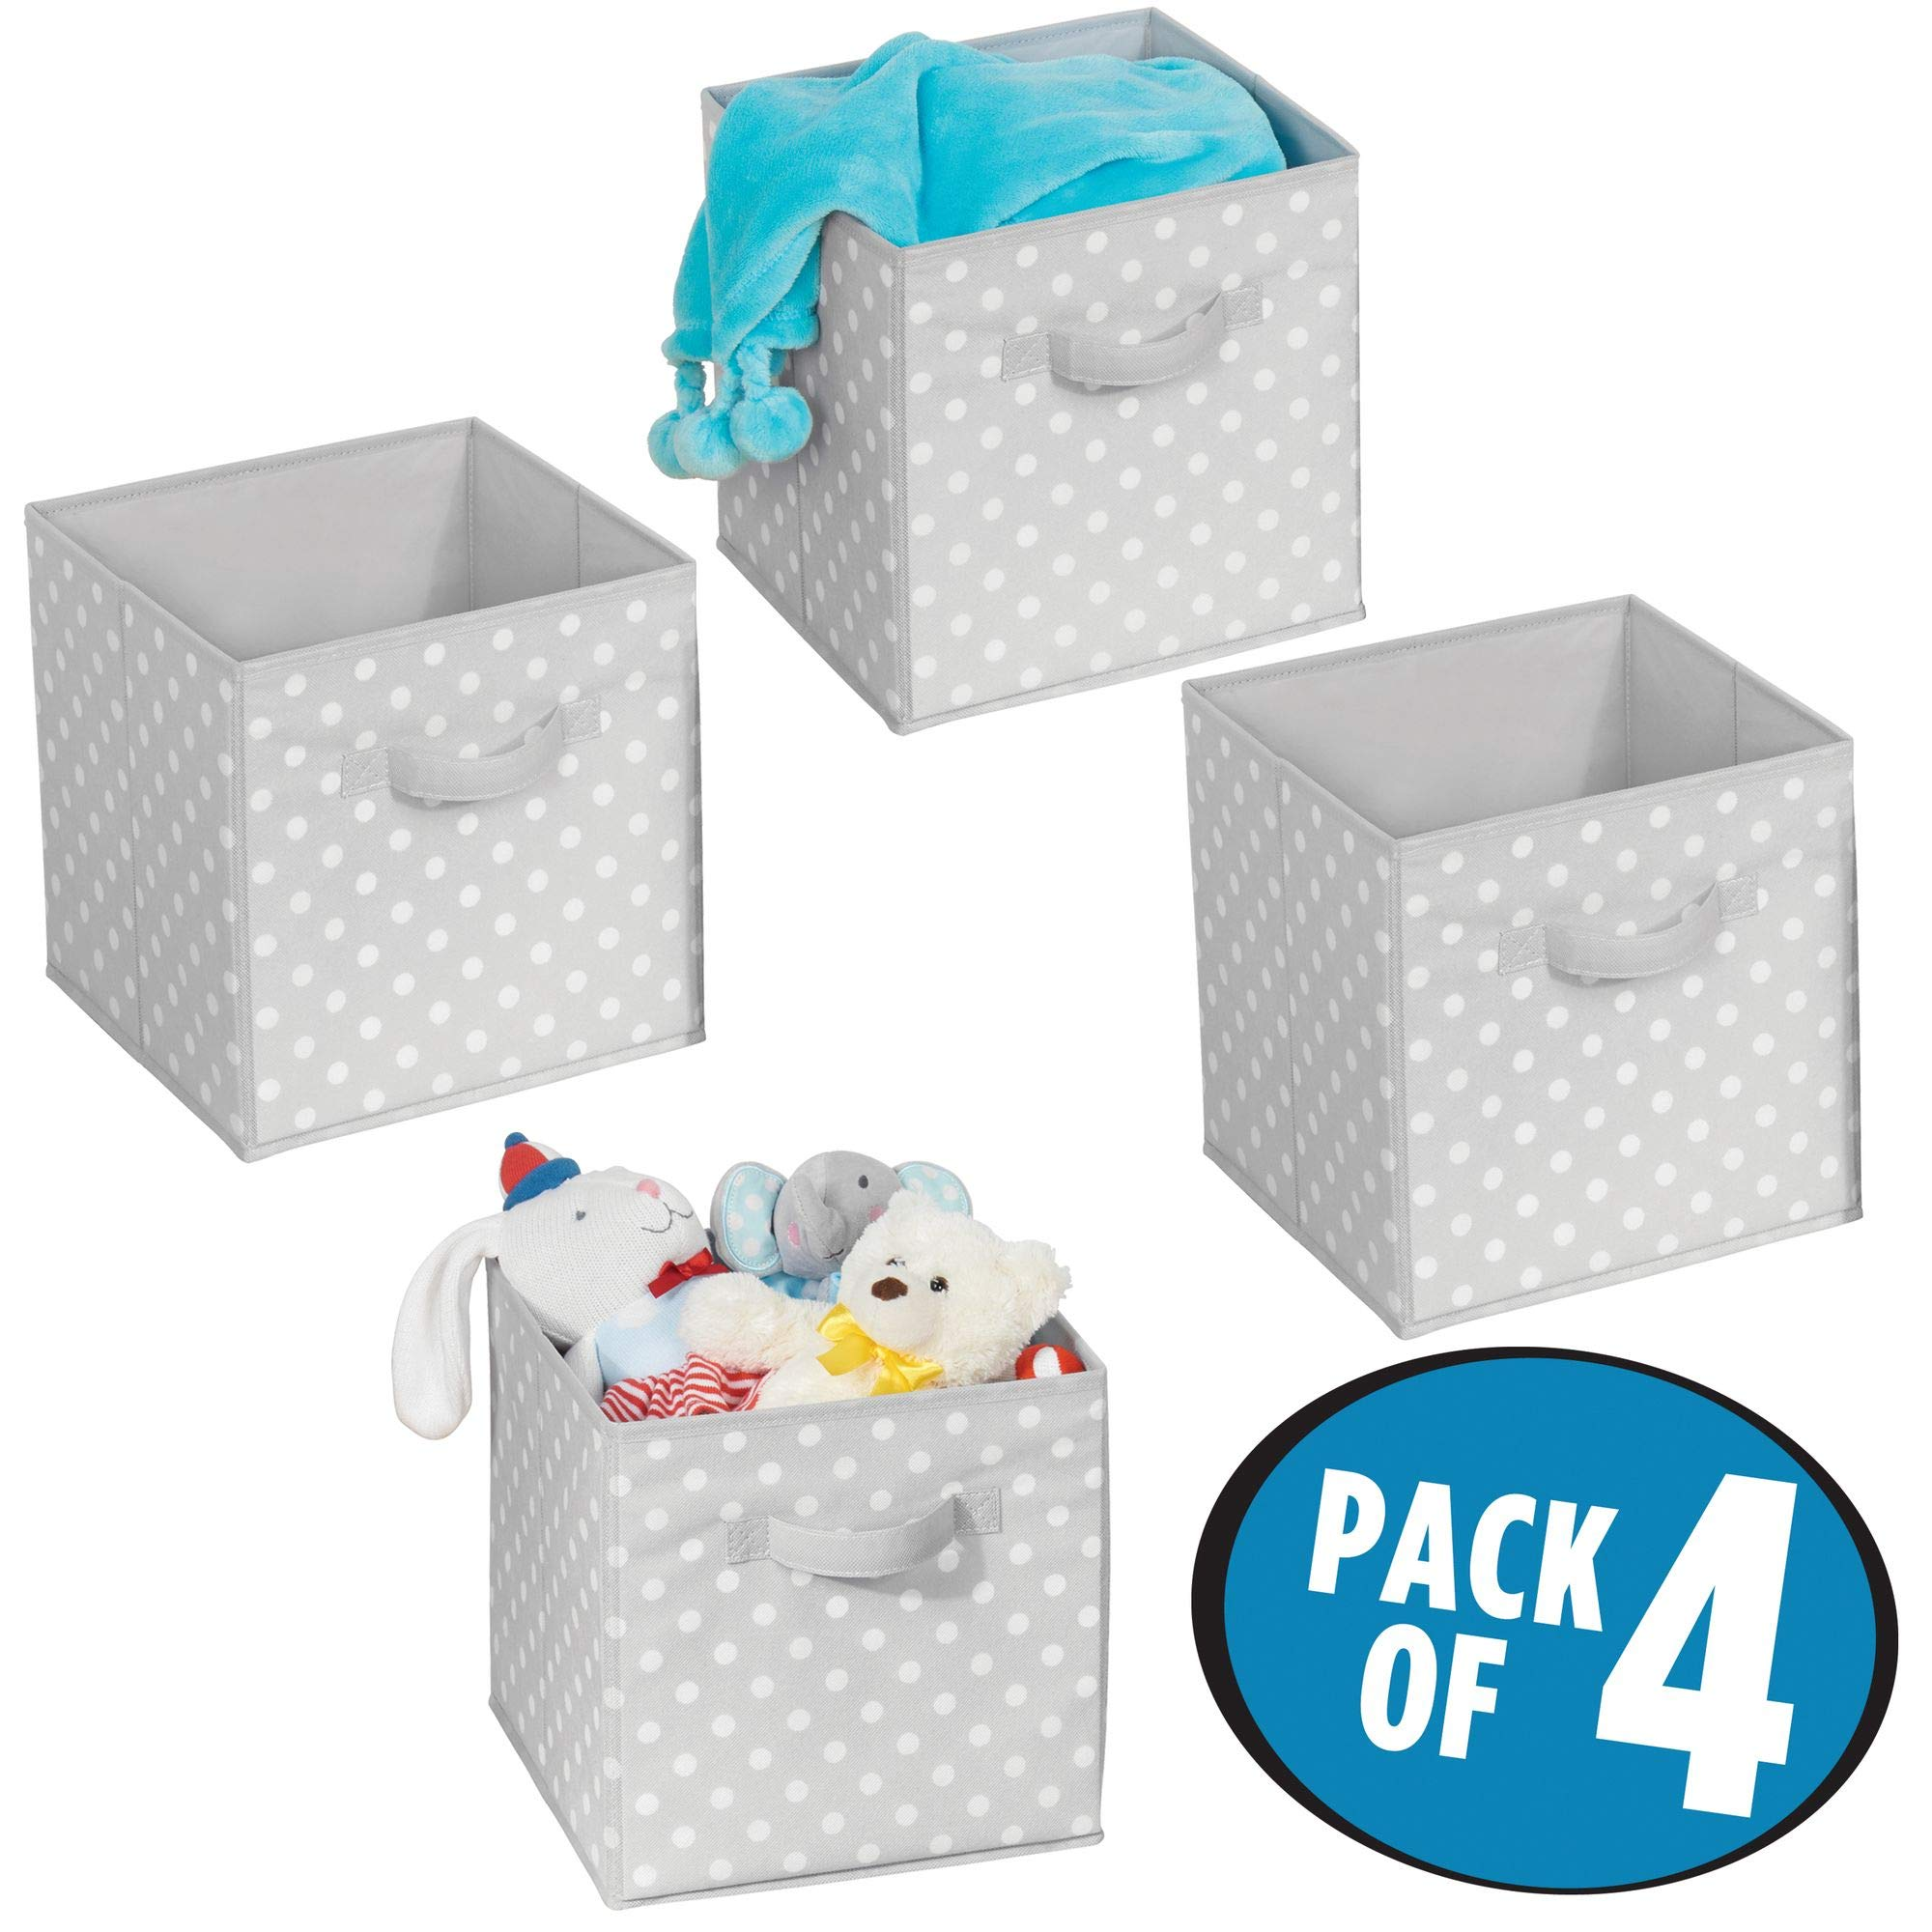 mDesign Soft Fabric Closet Organizer Bin Box - Front Handle - Cube Storage for Child/Kids Room, Nursery, Toy Room, Furniture Organization - 10.5'' high - 4 Pack, Gray with White Polka Dots